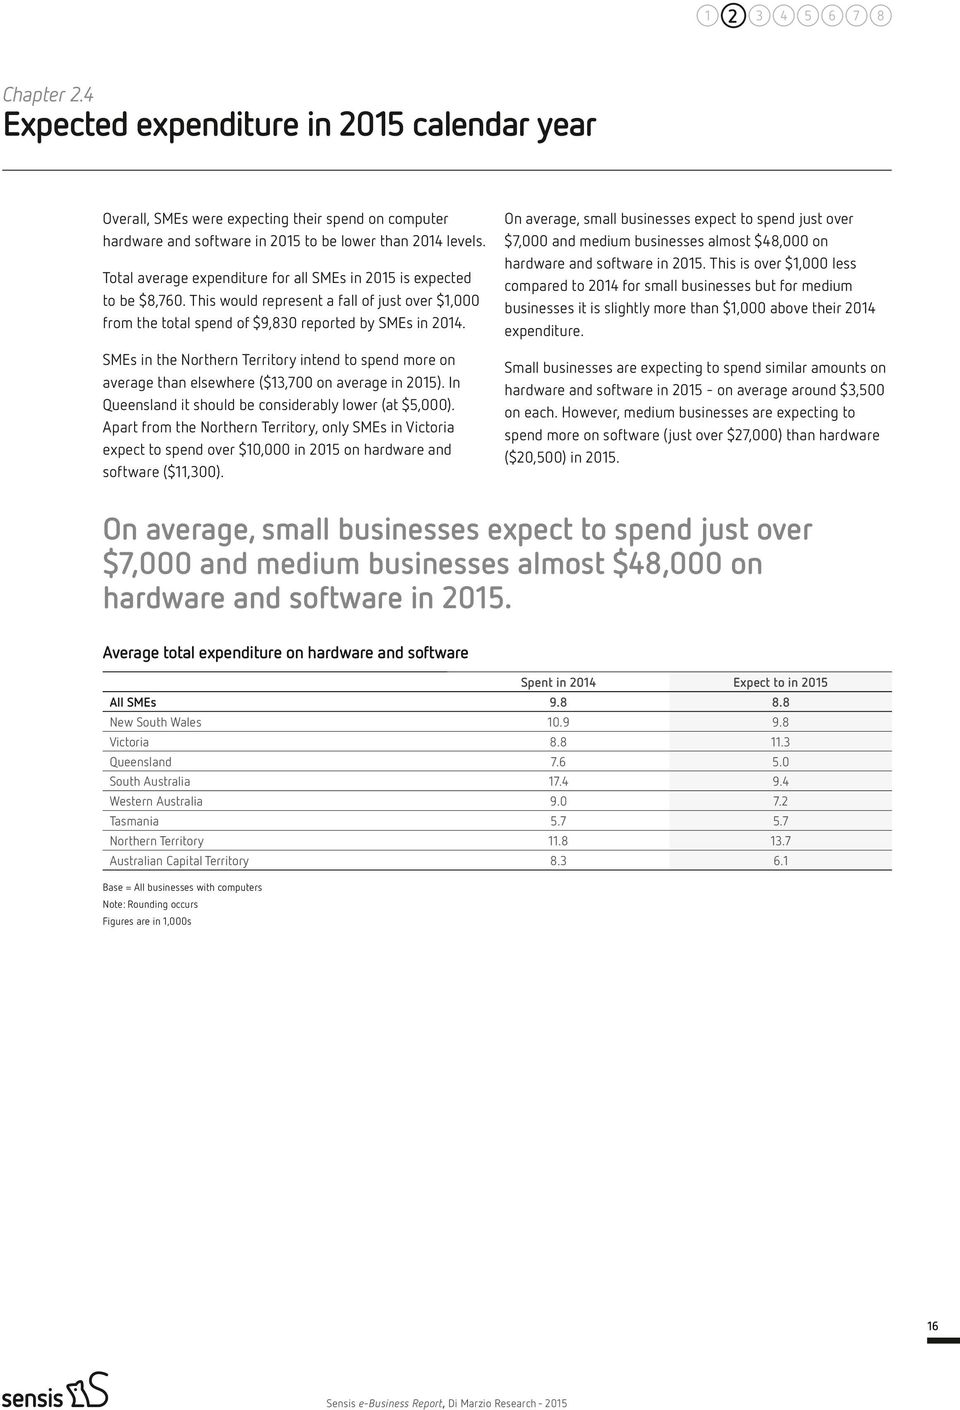 SMEs in the Northern Territory intend to spend more on average than elsewhere ($13,700 on average in 2015). In Queensland it should be considerably lower (at $5,000).